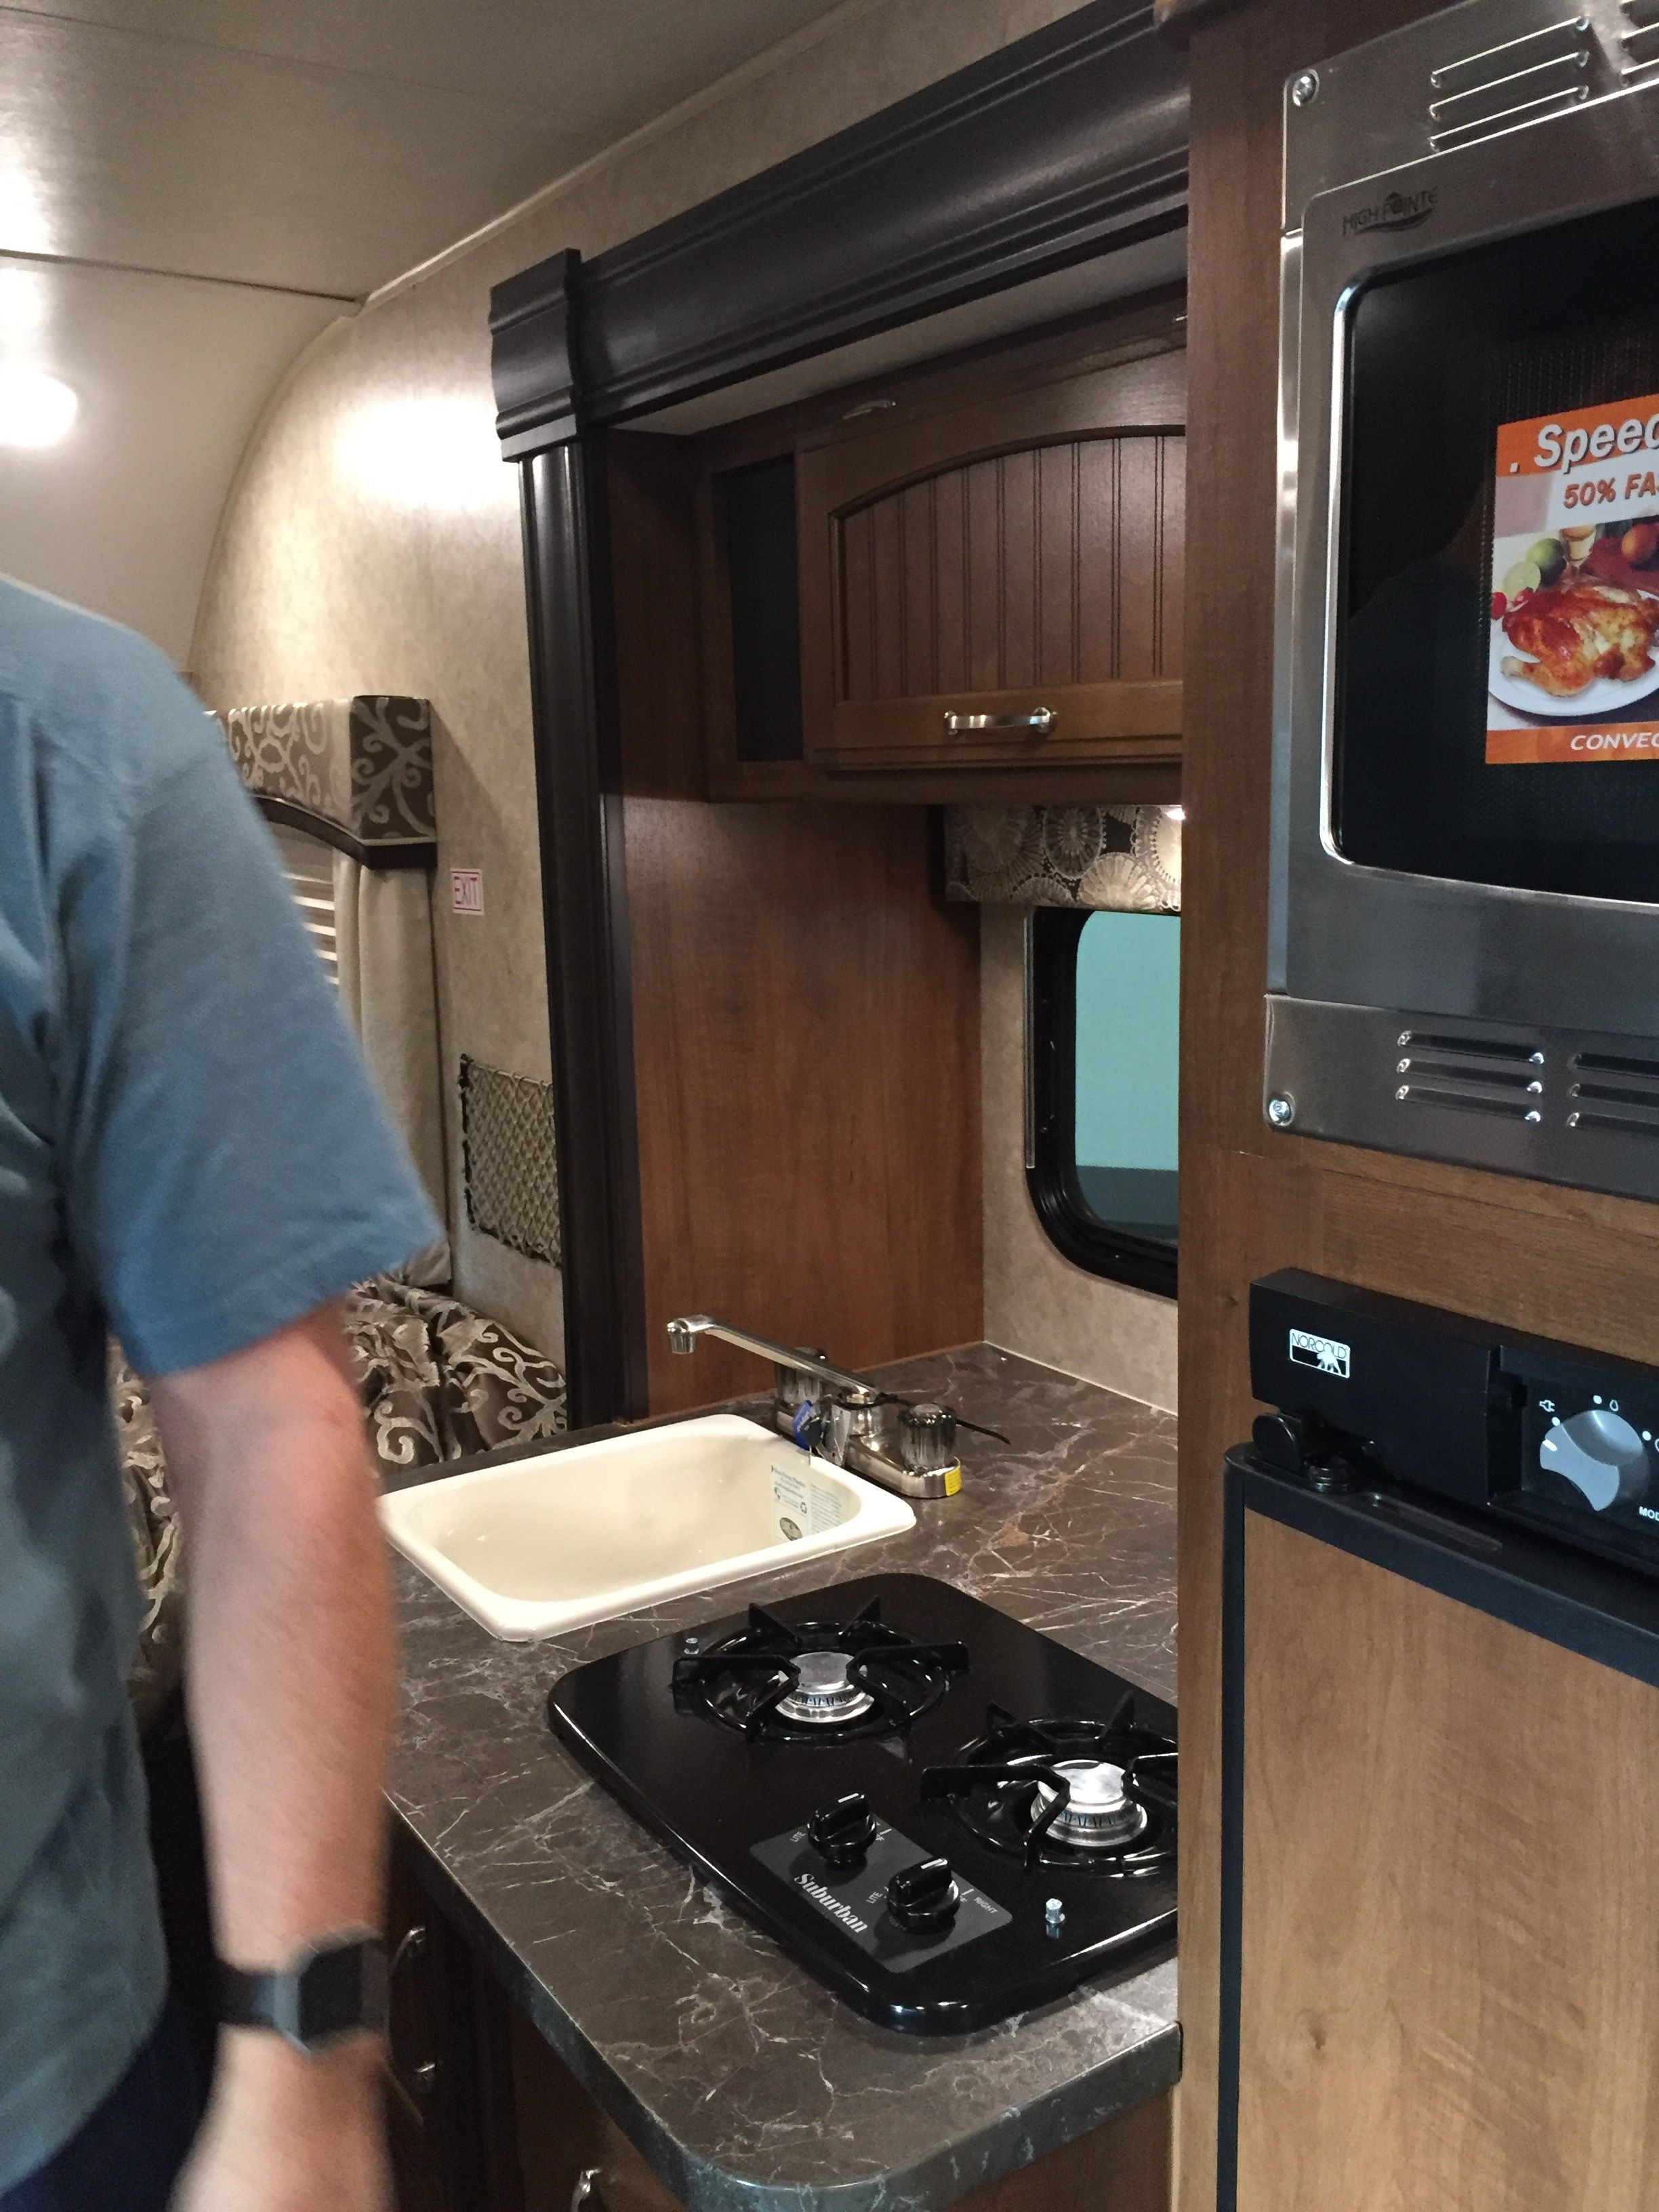 Pin By Shar Puch On Mini Campers Mini Camper Kitchen Cabinets